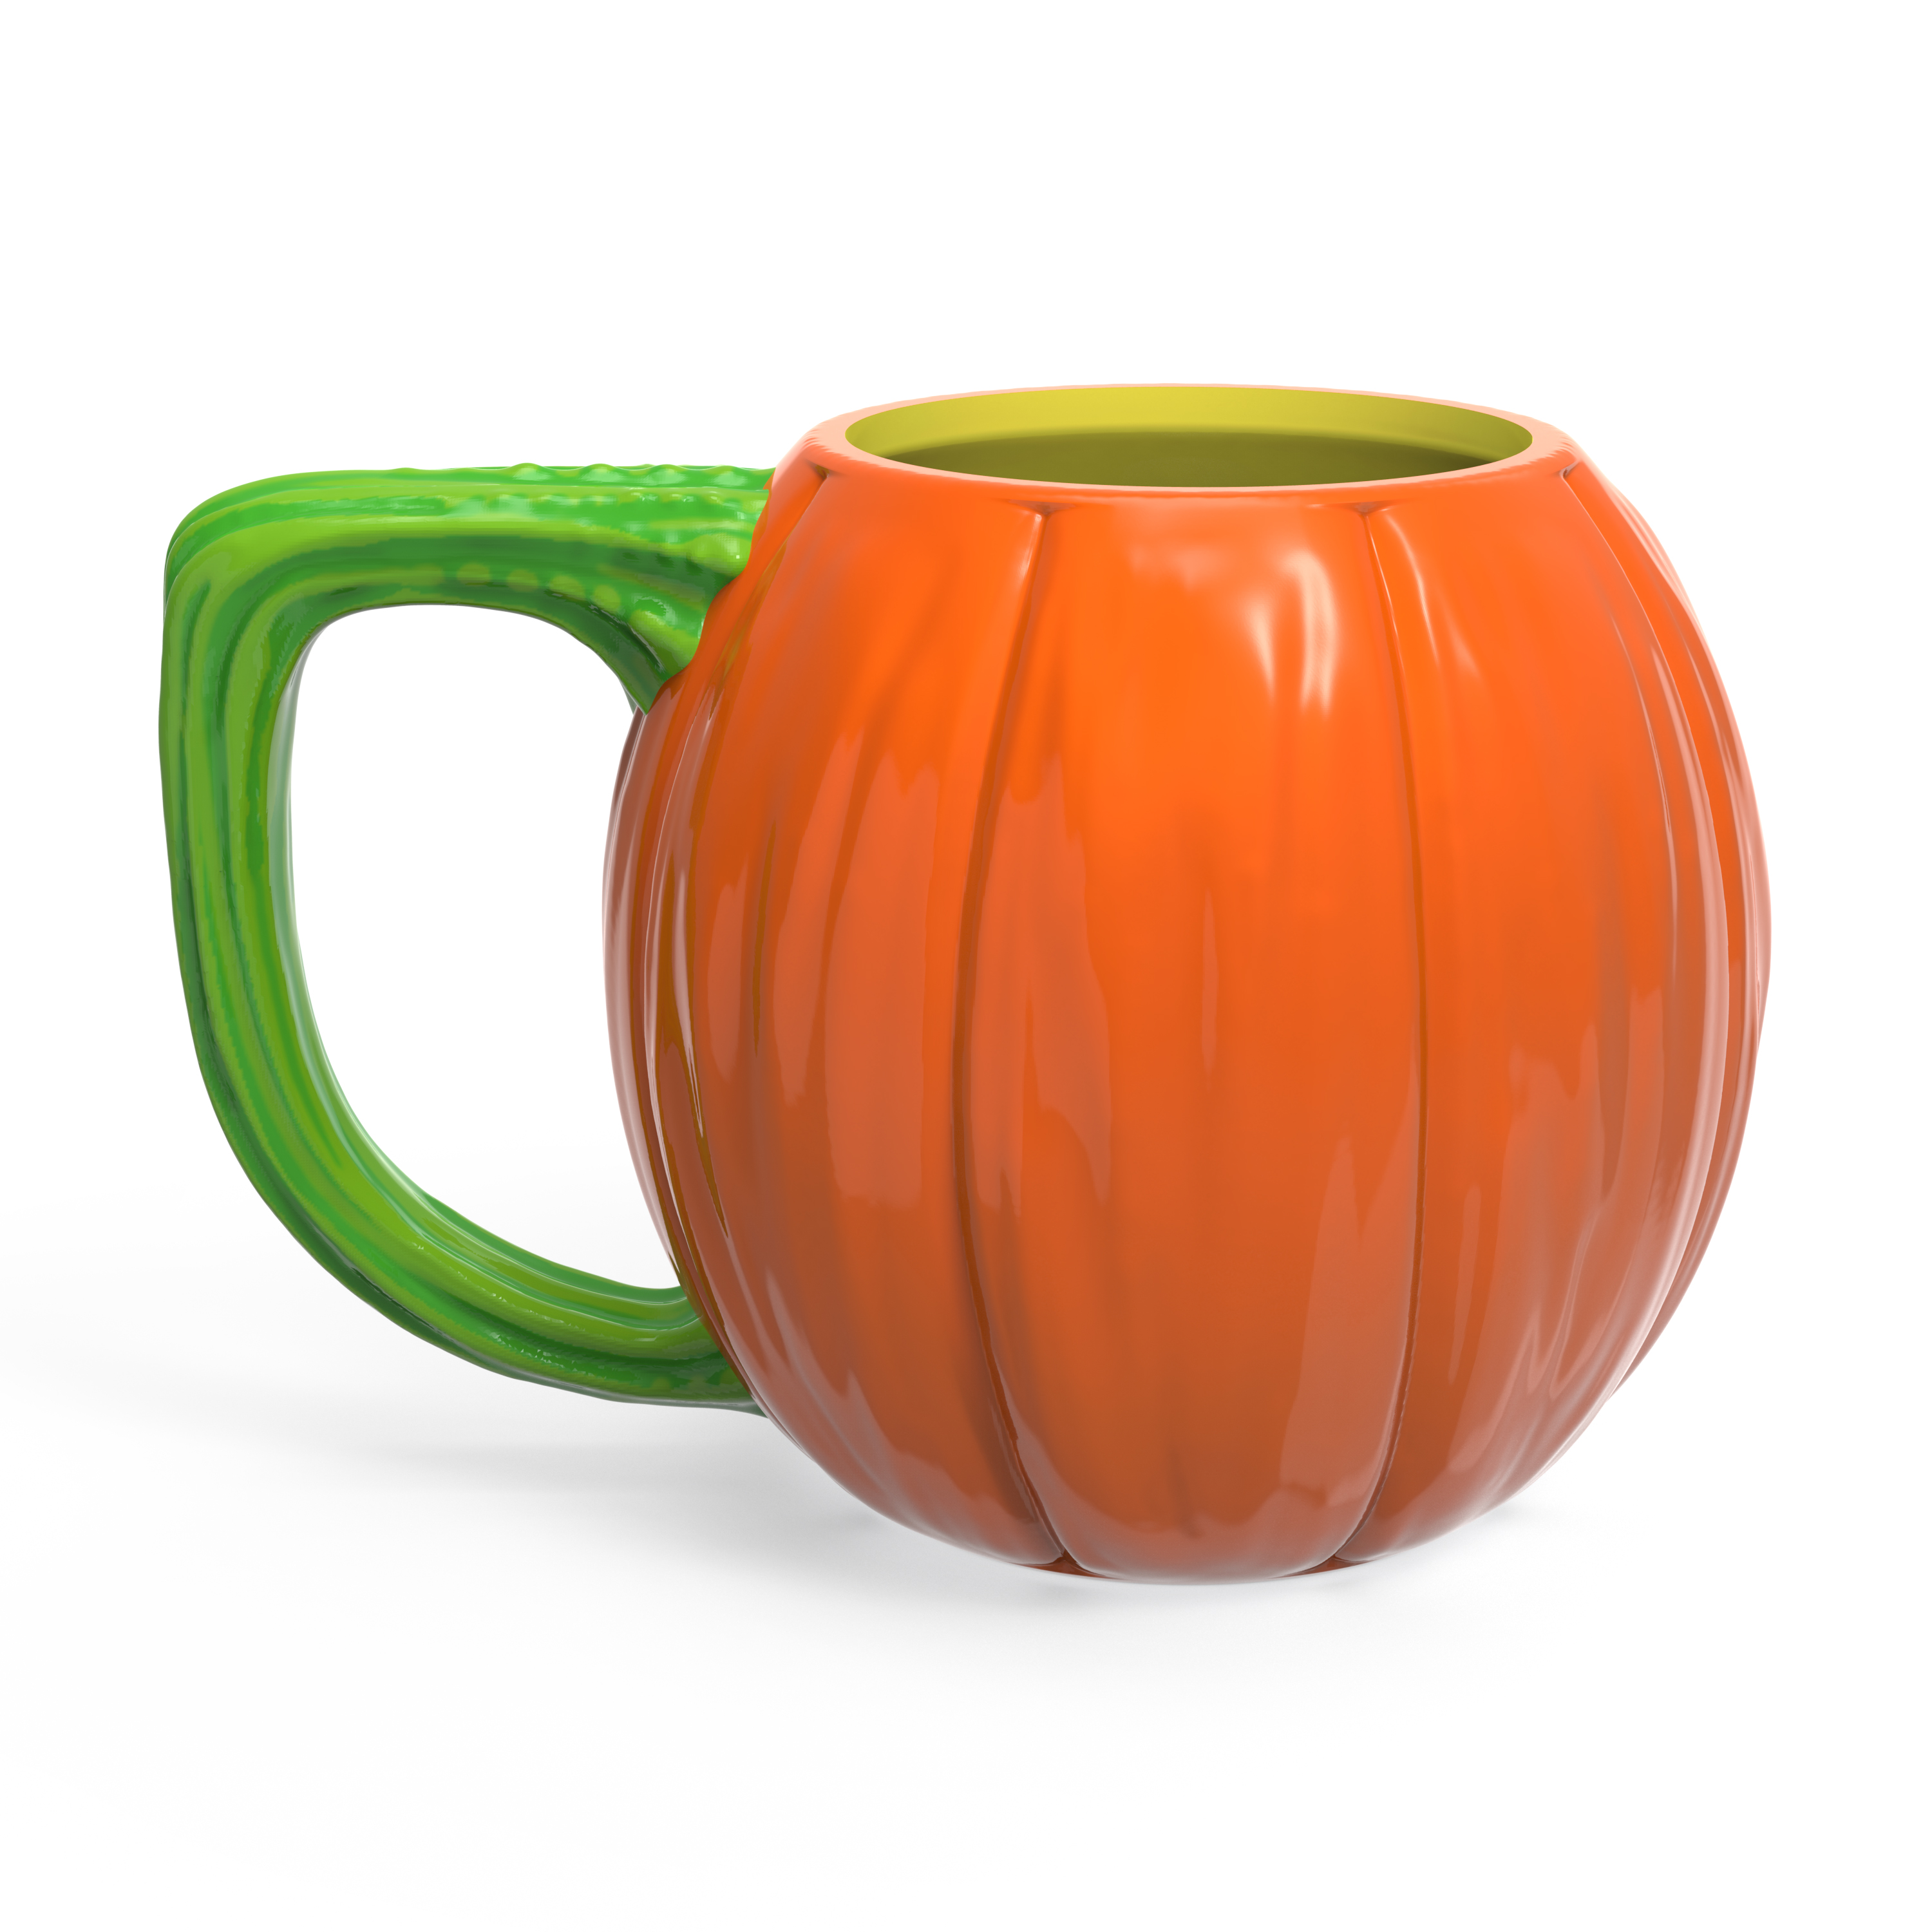 Halloween 15 ounce Coffee Mug and Spoon, Jack O' Lantern slideshow image 5